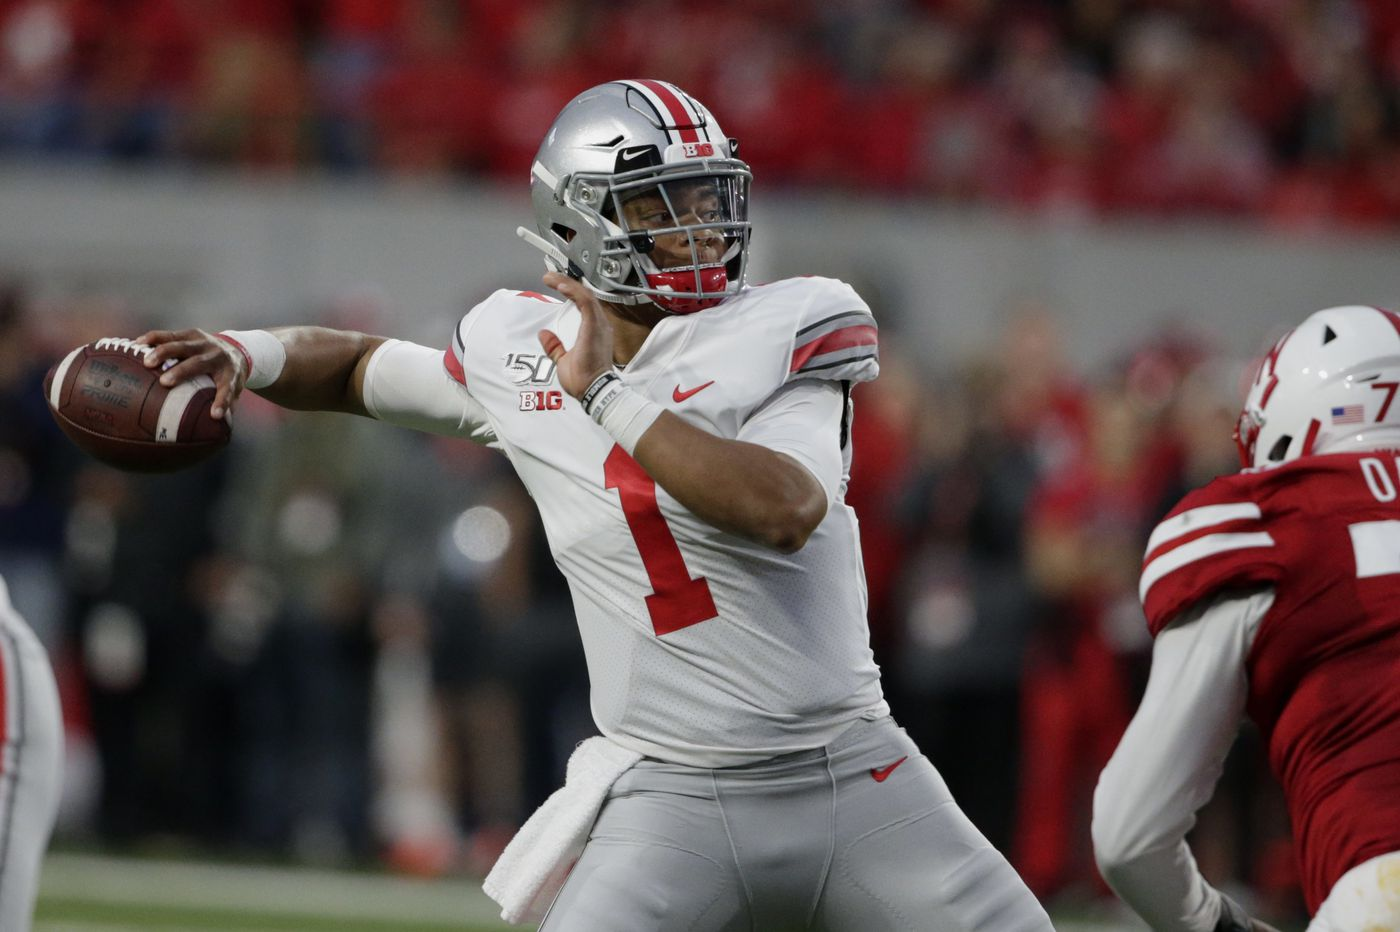 In Week 8 of the college football season, Penn State and the rest of the Big Ten finally join the party